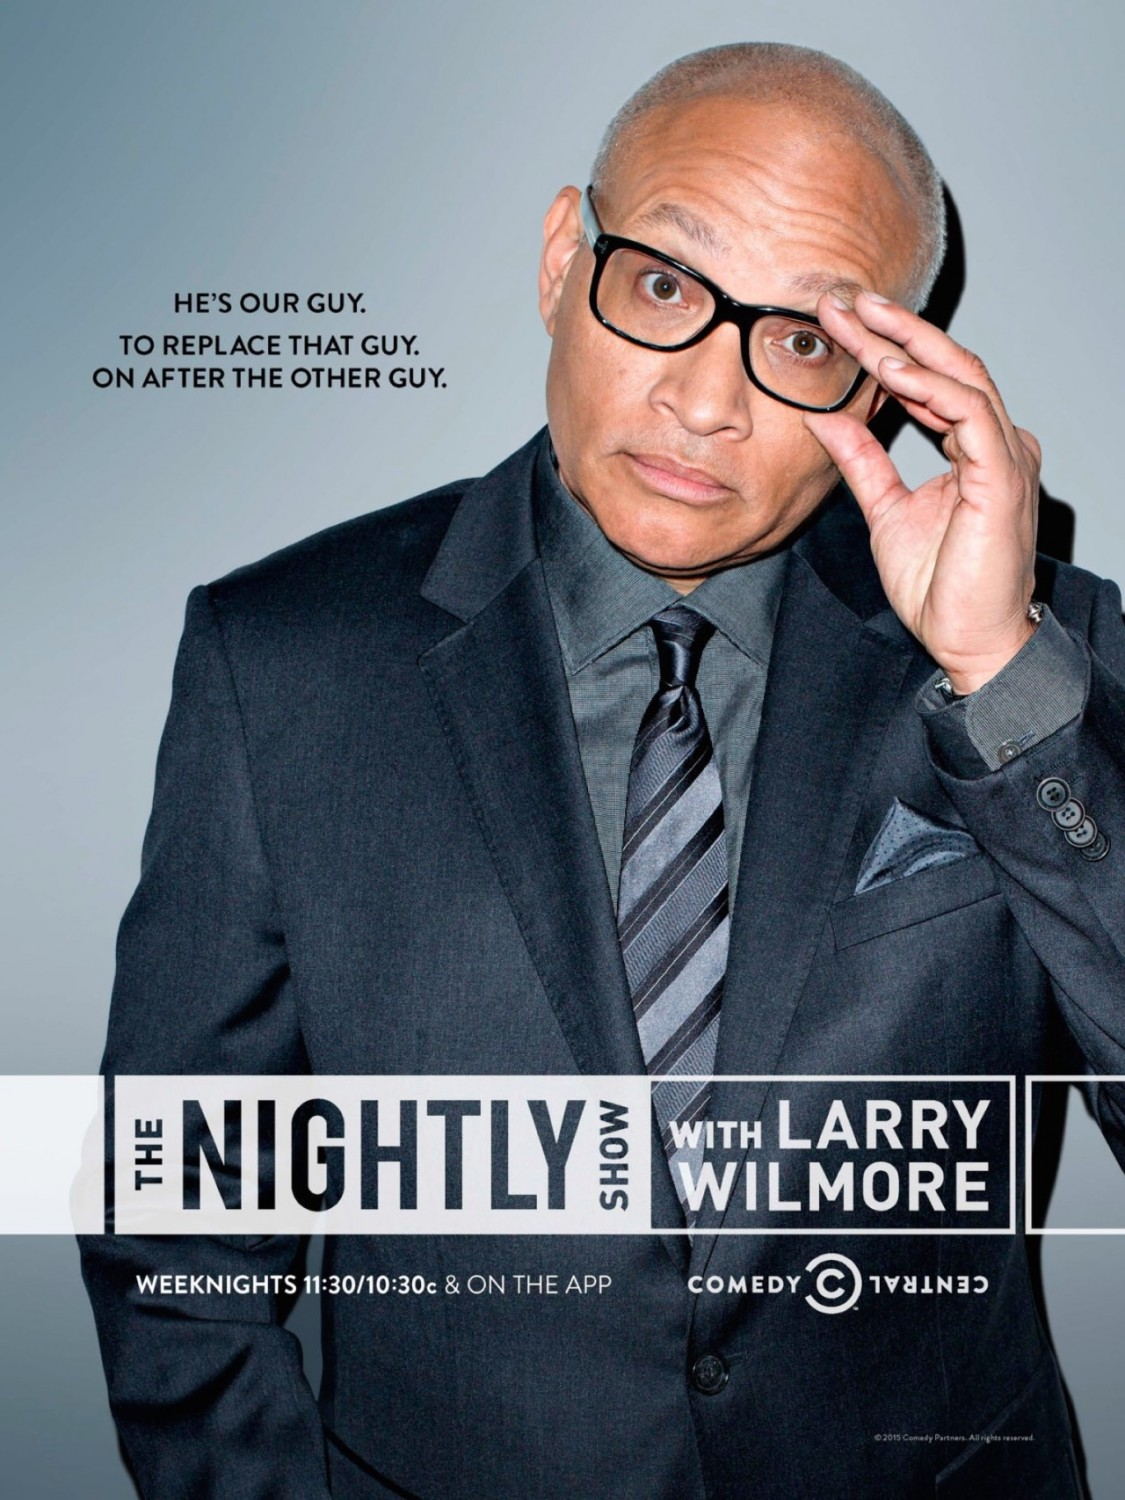 The%20Nightly%20Show%20with%20Larry%20Wilmore